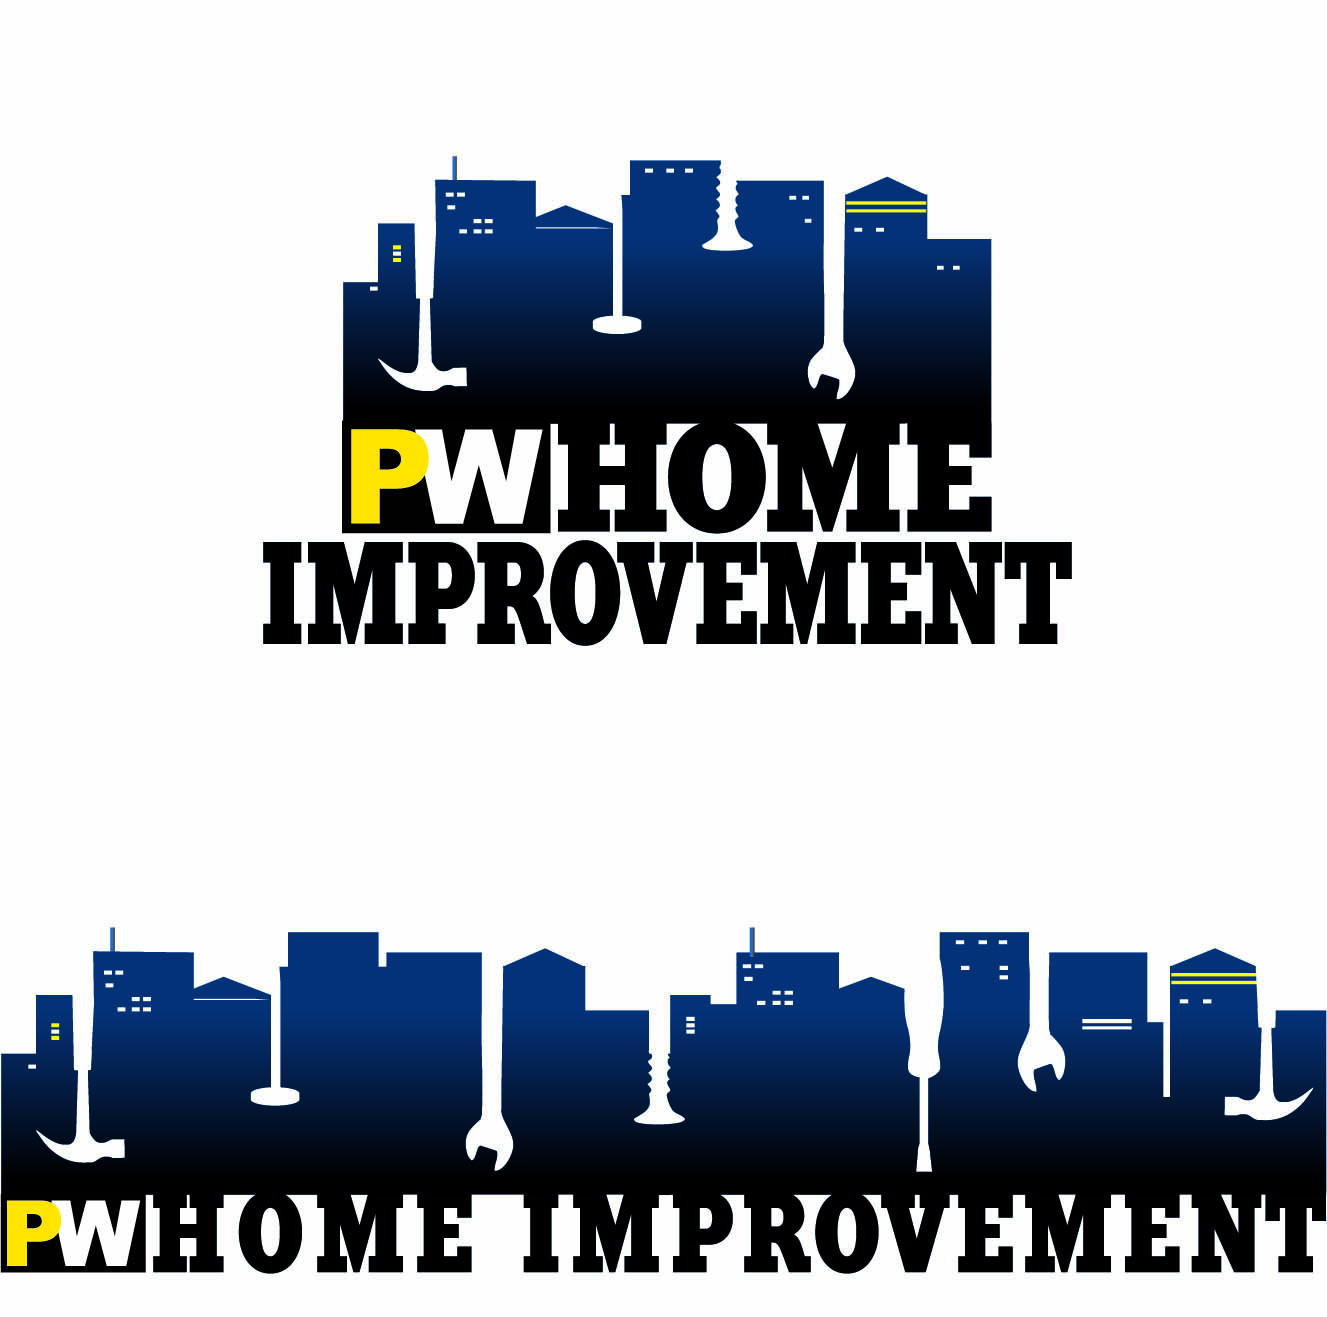 home improvement logo design | dionna gary | archinect